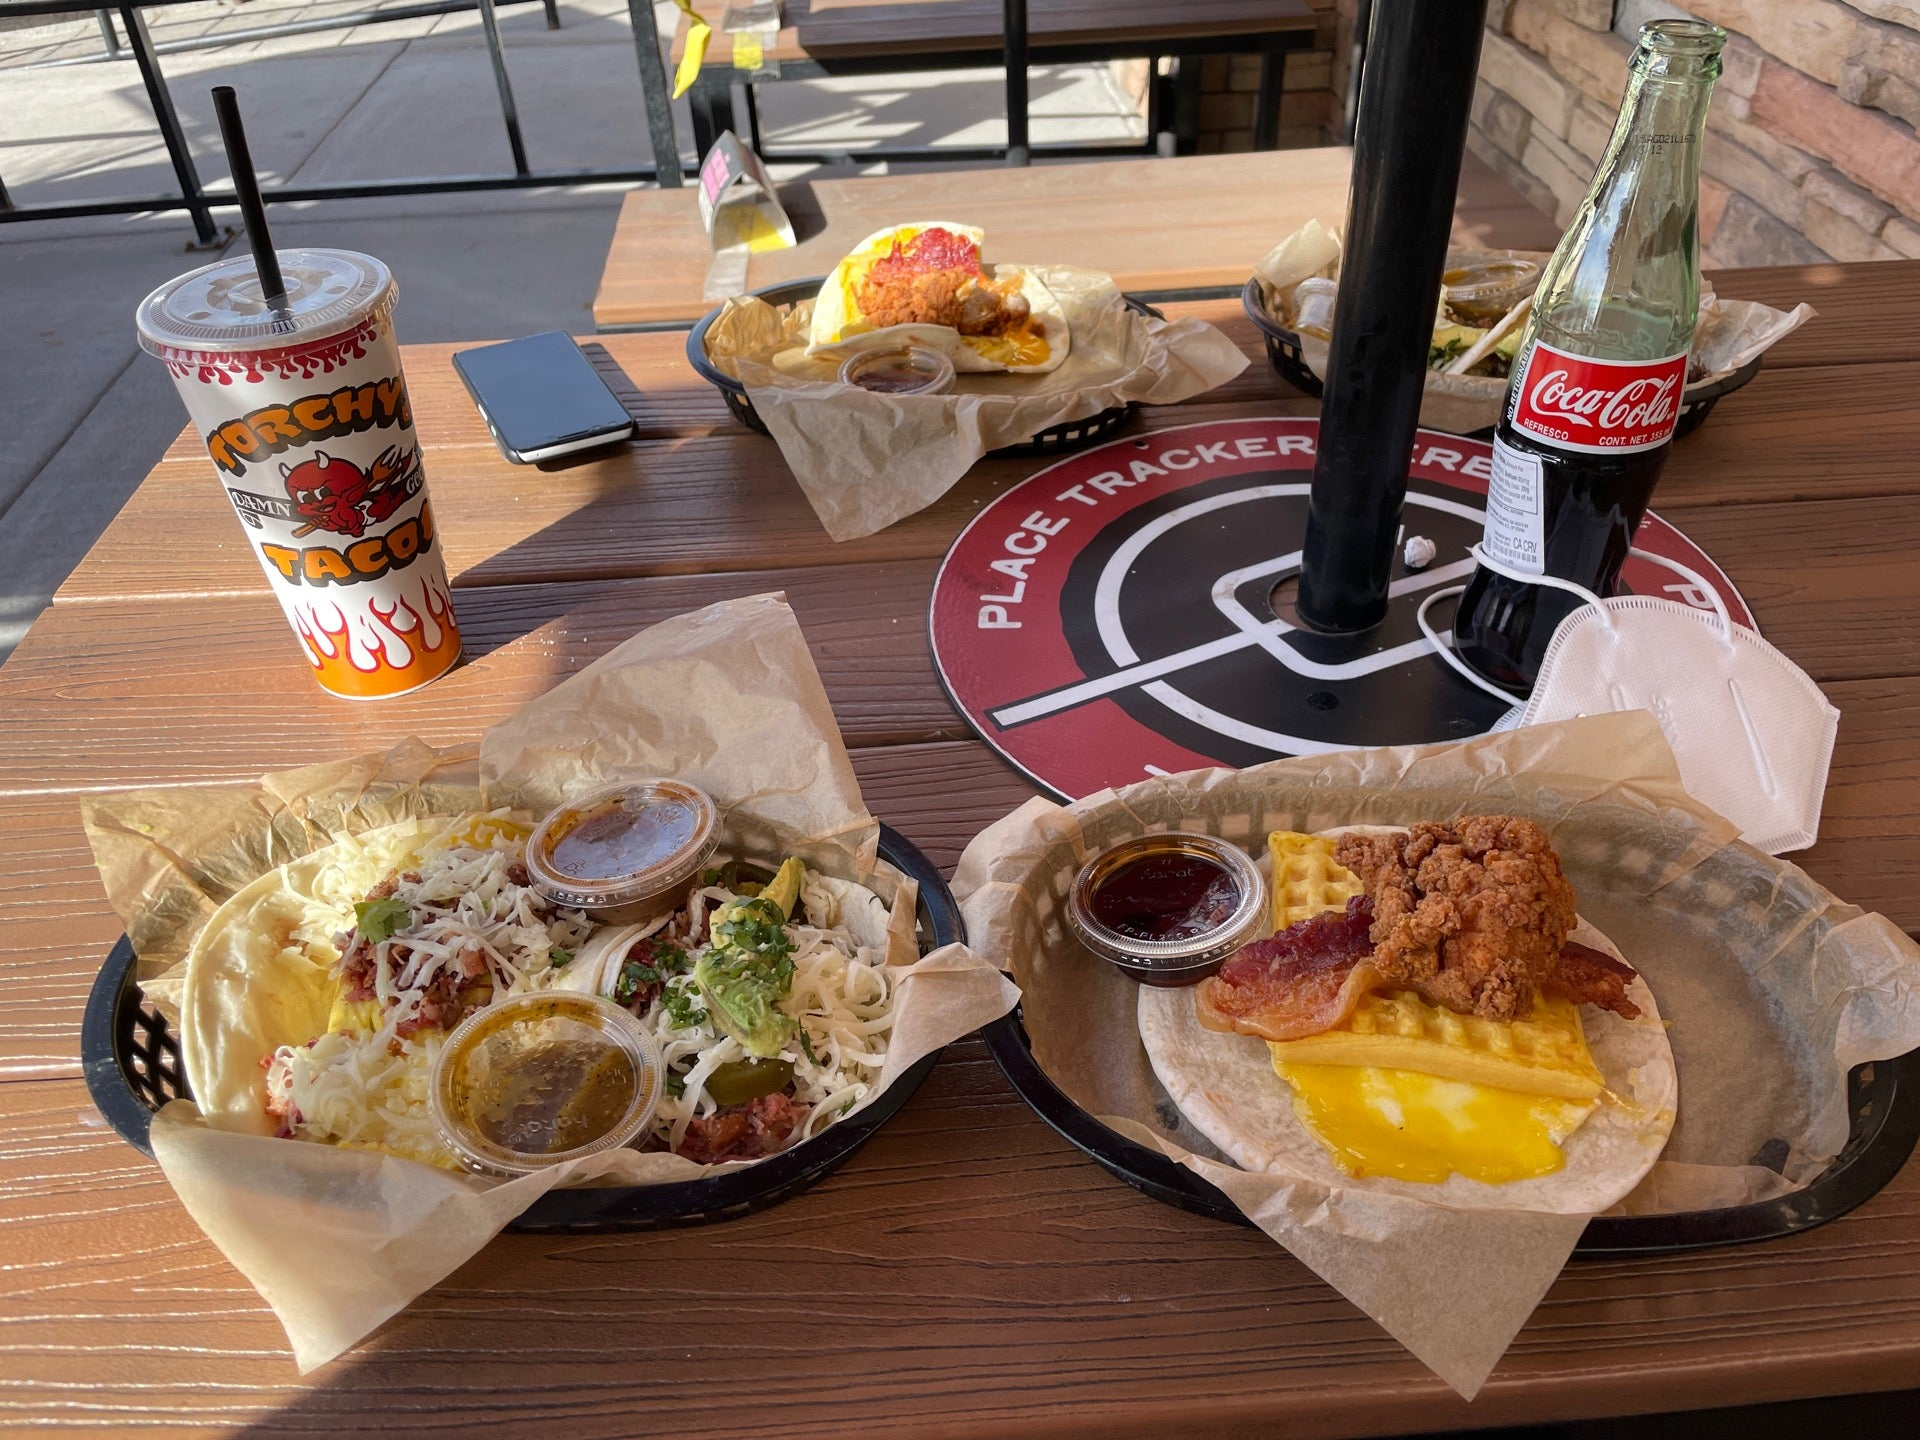 Checked in at Torchy's Tacos